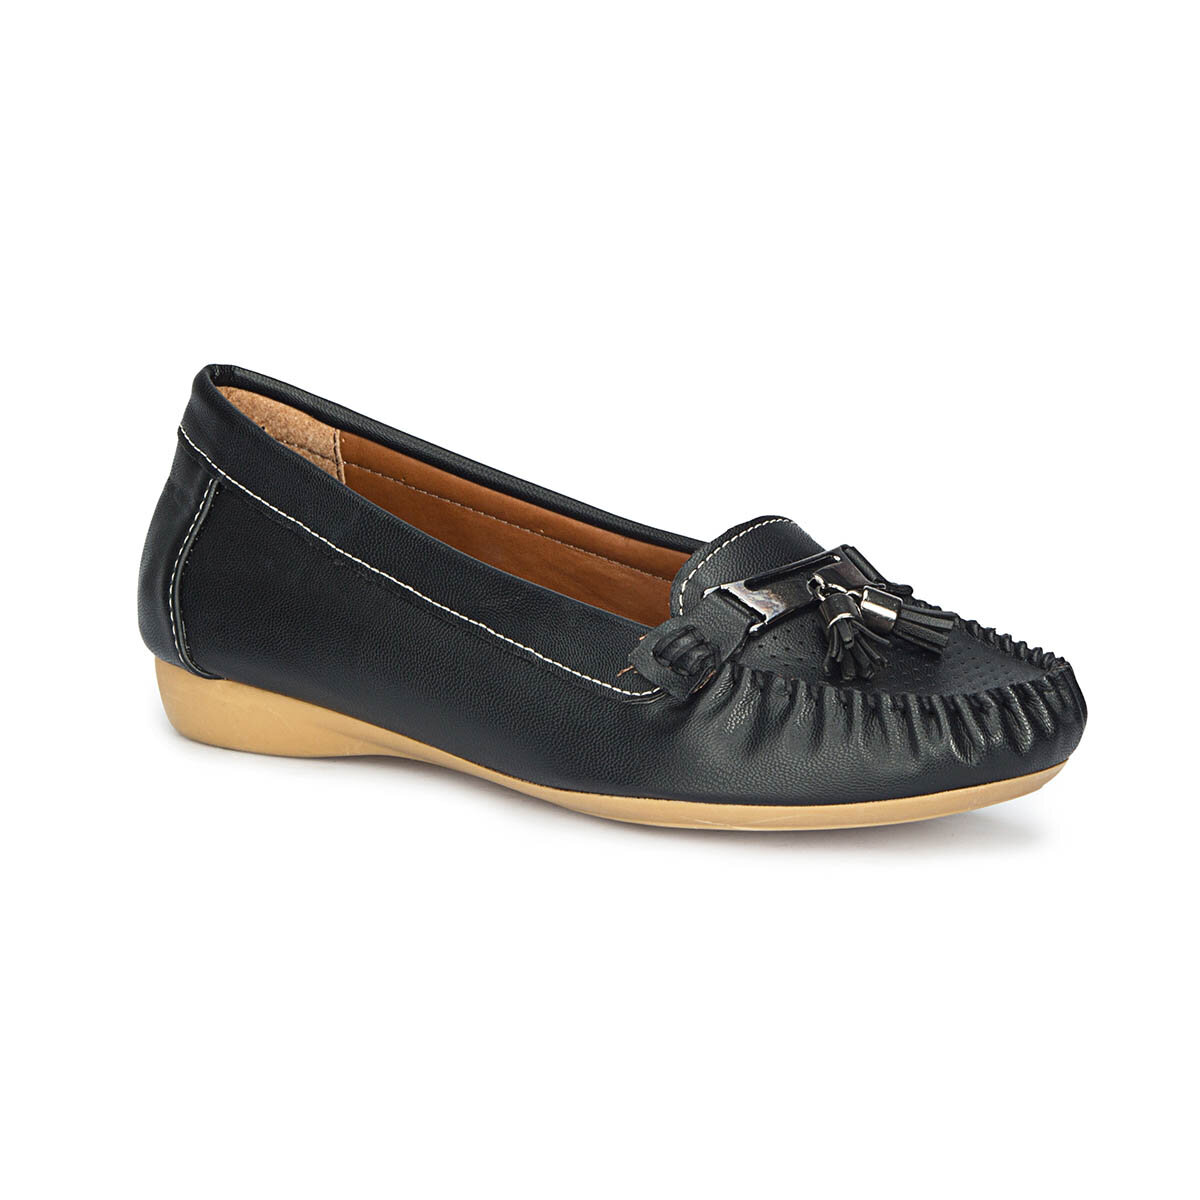 FLO 71.157232.Z Black Women Loafer Shoes Polaris